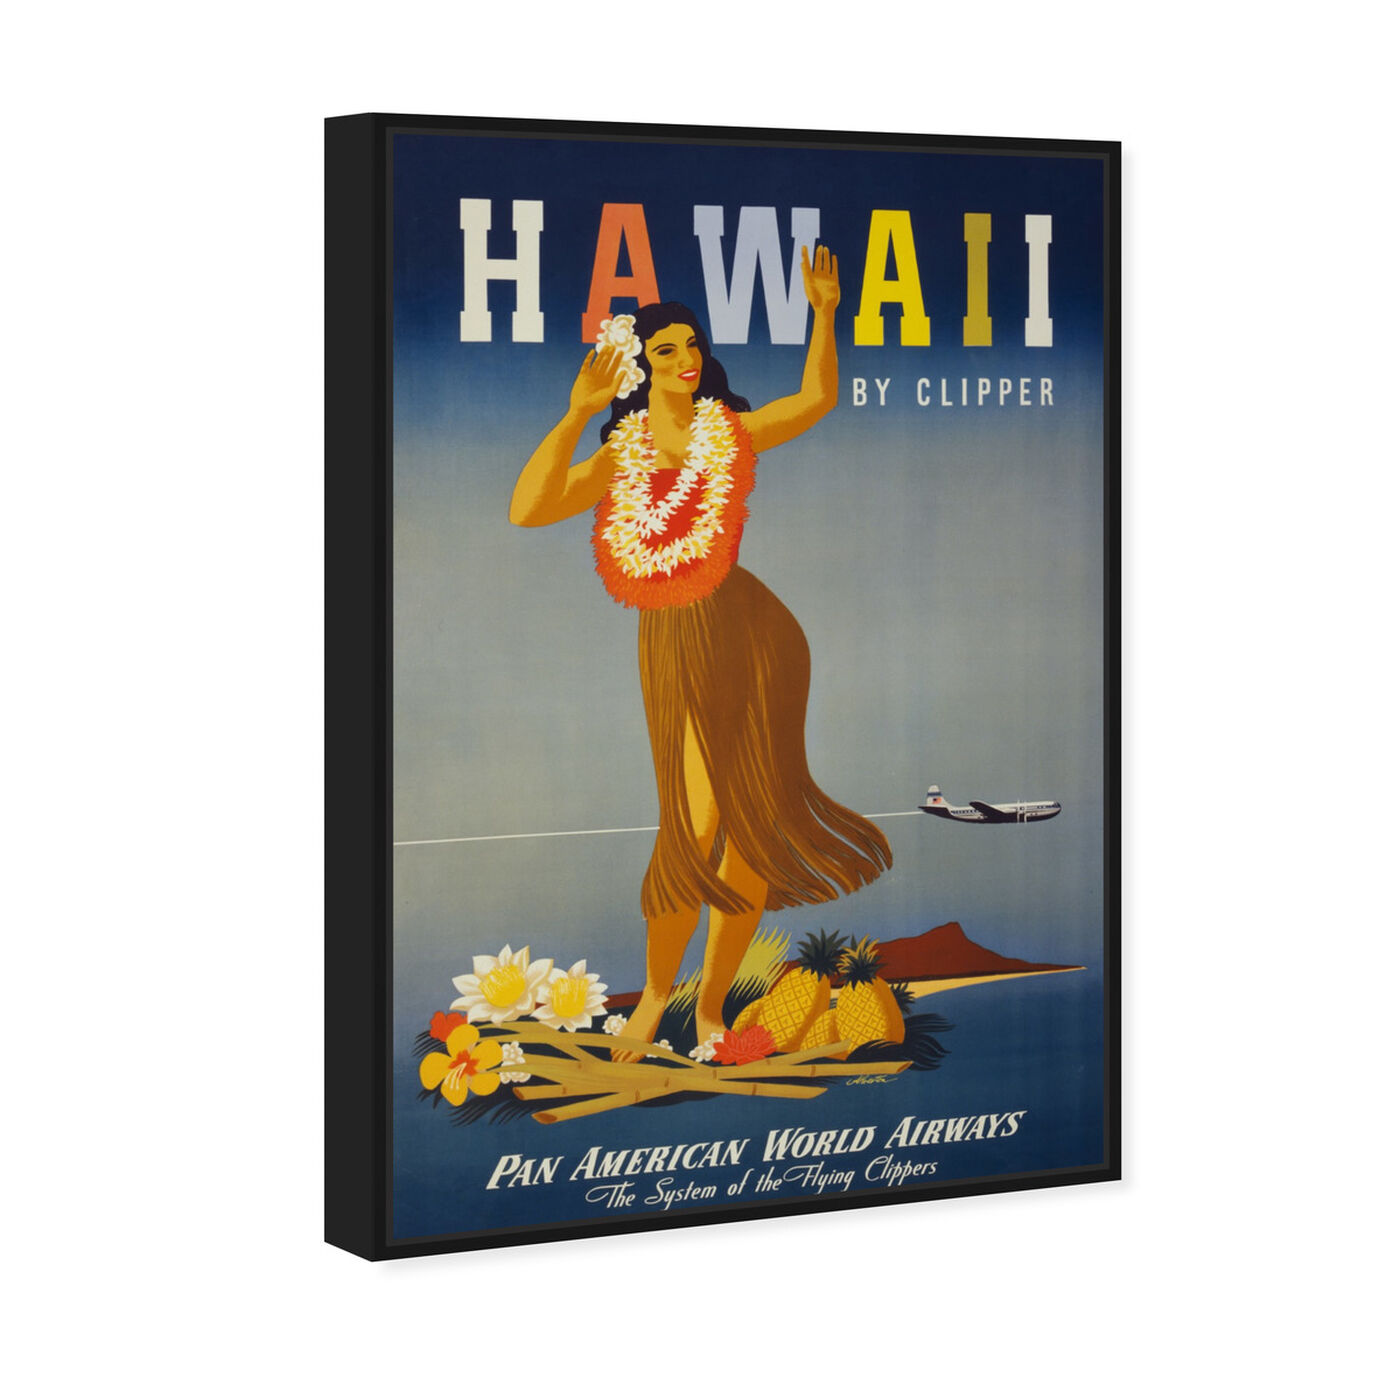 Angled view of Hawaii featuring cities and skylines and united states cities art.